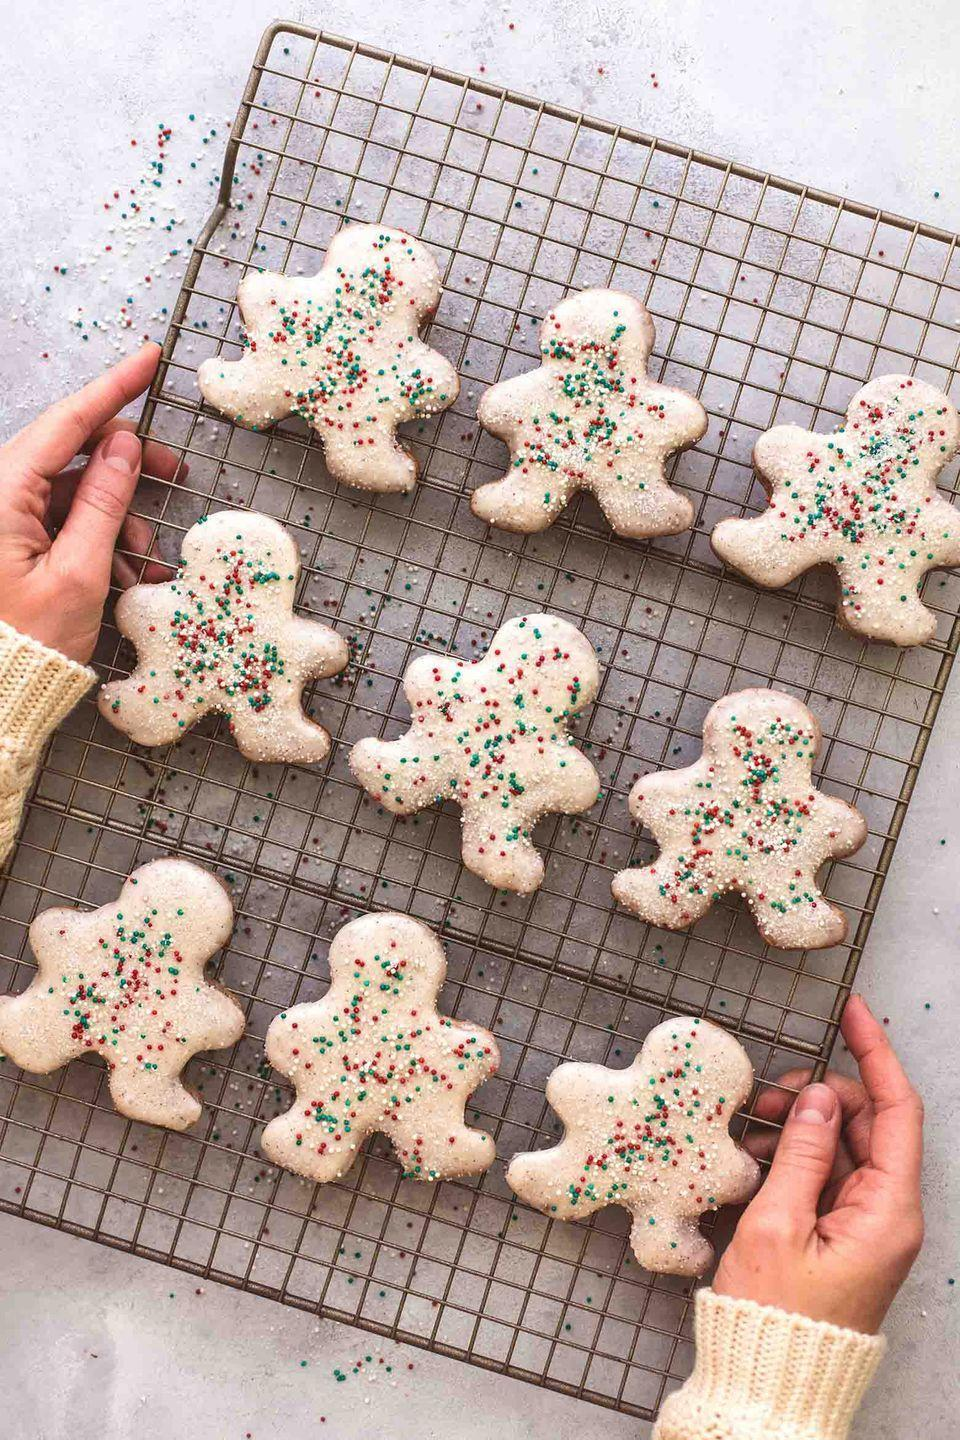 """<p>These absolutely adorable gingerbread men are super-simple — you don't even have to chill the dough.</p><p><strong>Get the recipe at <a href=""""https://www.lecremedelacrumb.com/gingerbread-sugar-cookies/"""" rel=""""nofollow noopener"""" target=""""_blank"""" data-ylk=""""slk:Creme de la Crumb"""" class=""""link rapid-noclick-resp"""">Creme de la Crumb</a>.</strong></p><p><a class=""""link rapid-noclick-resp"""" href=""""https://www.amazon.com/Happy-Gingerbread-Man-Cookie-Cutter/dp/B01M8II4T2?tag=syn-yahoo-20&ascsubtag=%5Bartid%7C10050.g.647%5Bsrc%7Cyahoo-us"""" rel=""""nofollow noopener"""" target=""""_blank"""" data-ylk=""""slk:SHOP COOKIE CUTTERS"""">SHOP COOKIE CUTTERS</a></p>"""